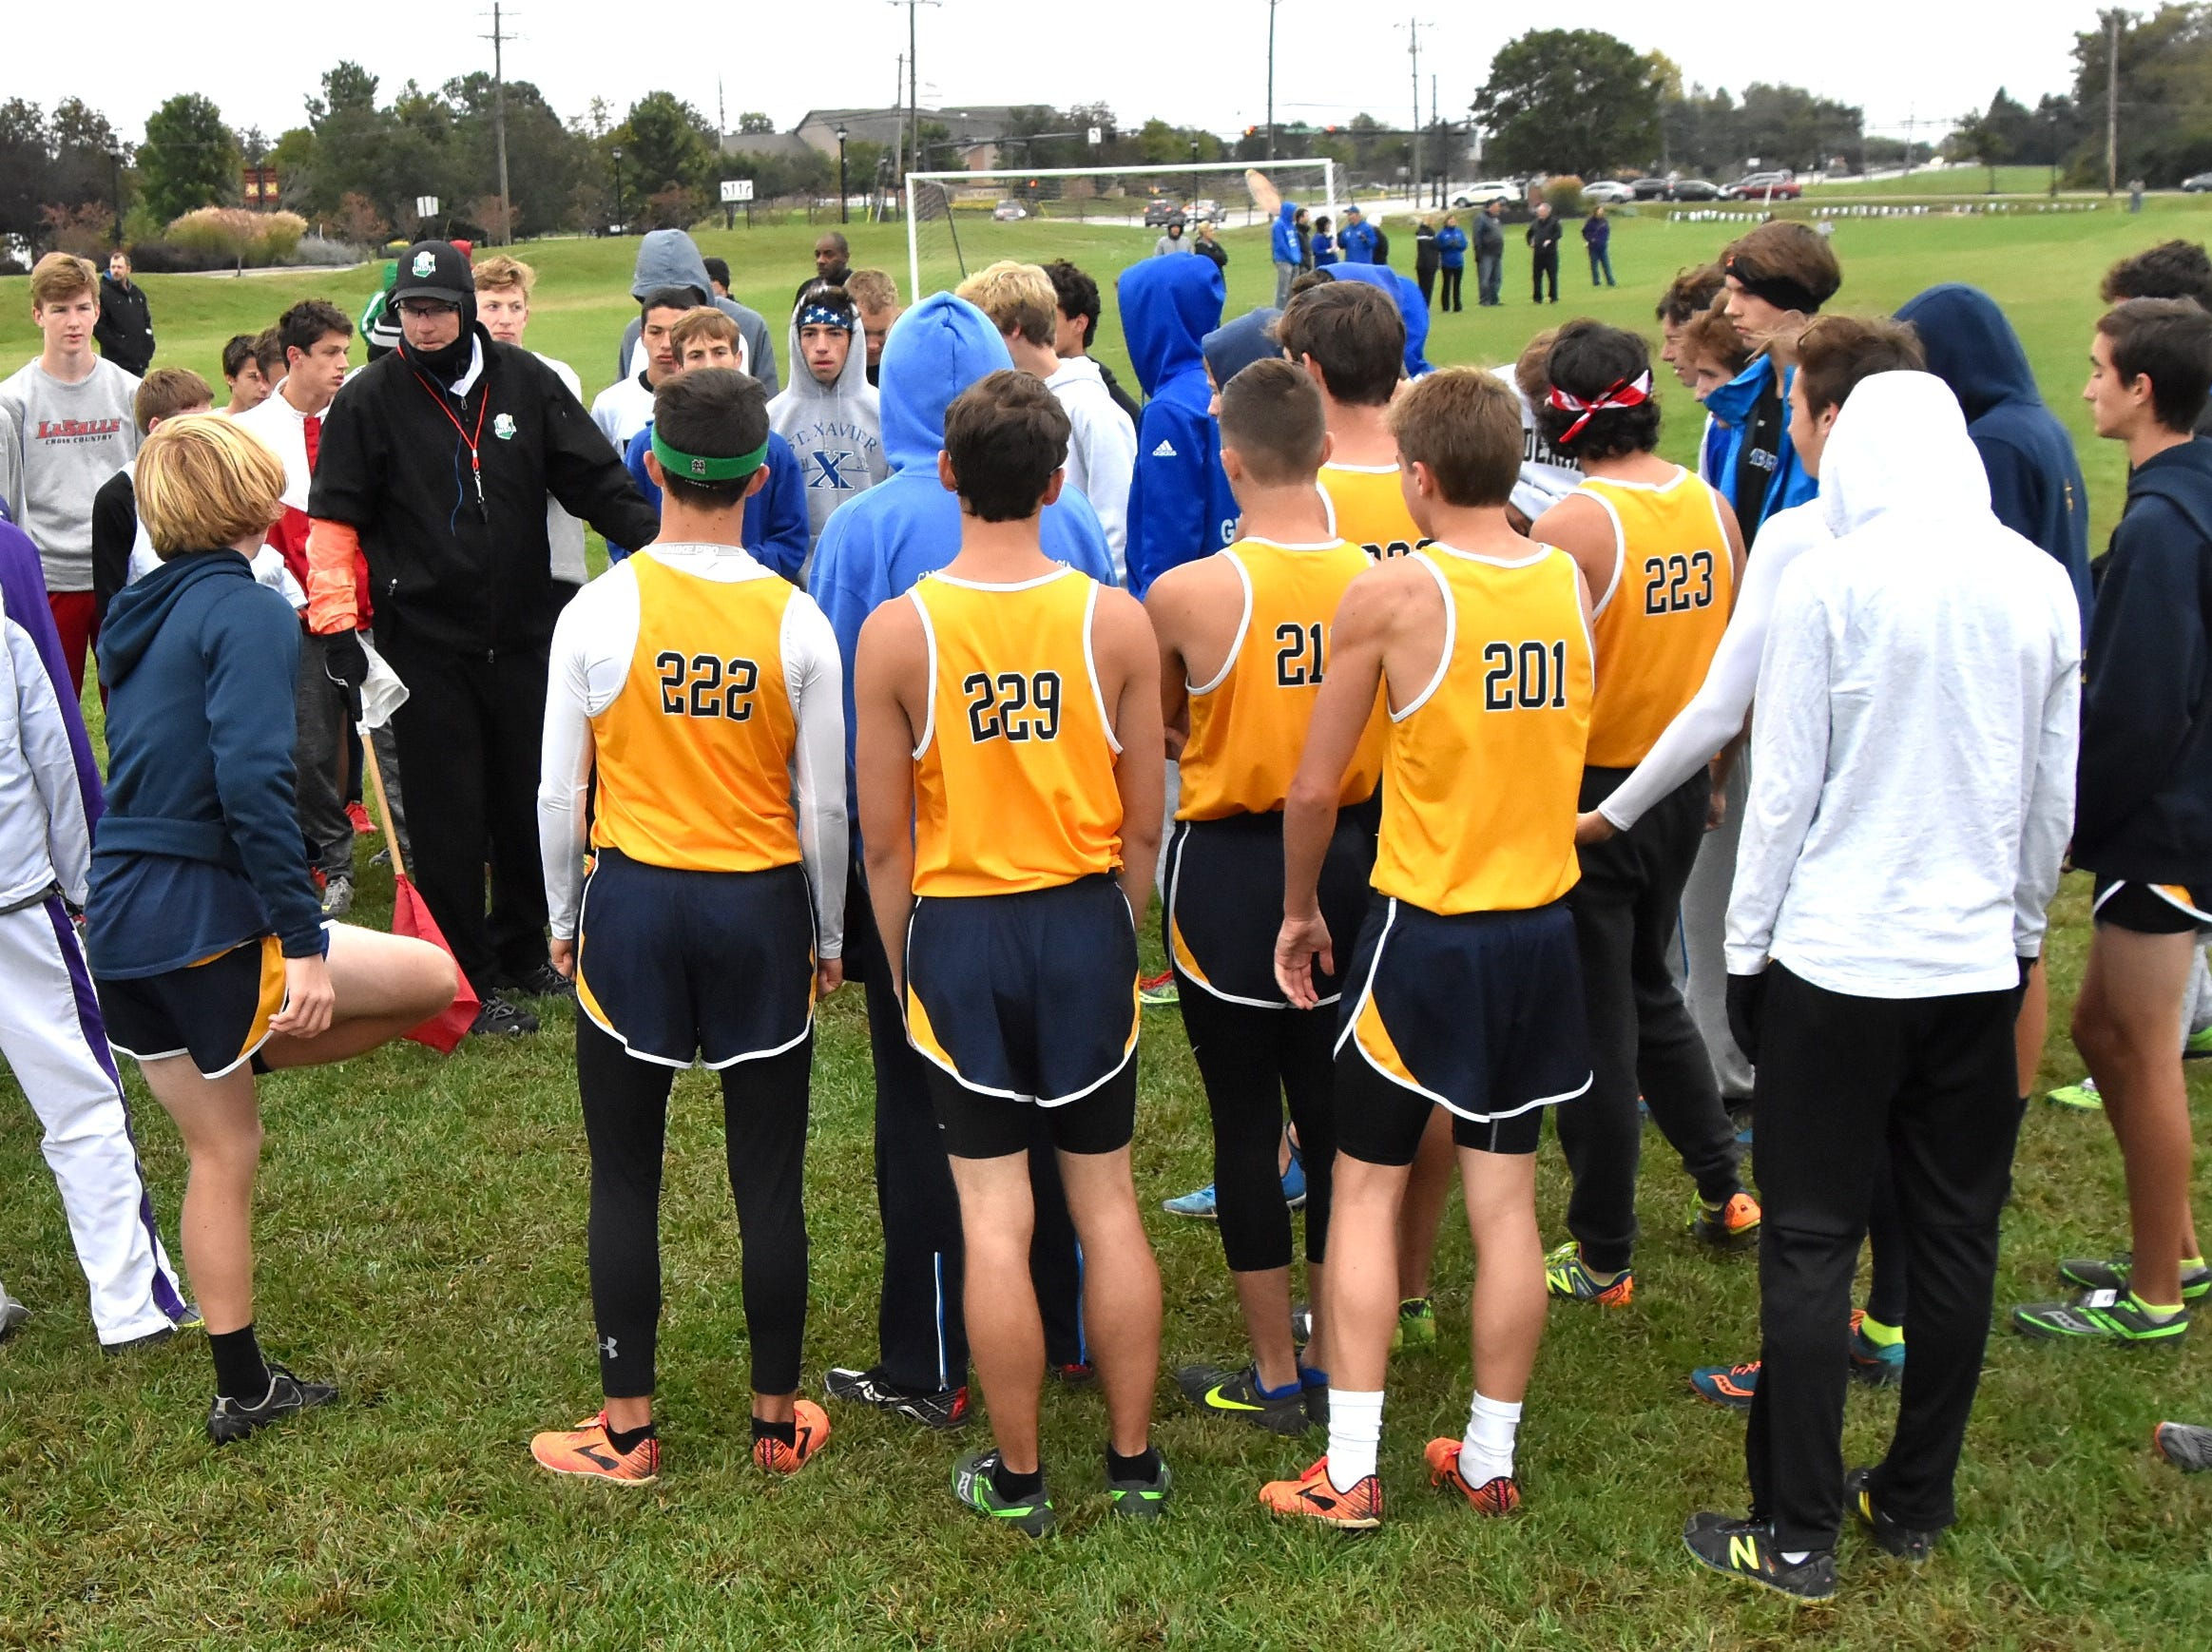 GCL runners get their instruction from an OHSAA official before racing at the 2018 GCL/GGCL Cross Country Championships, October 13, 2018.